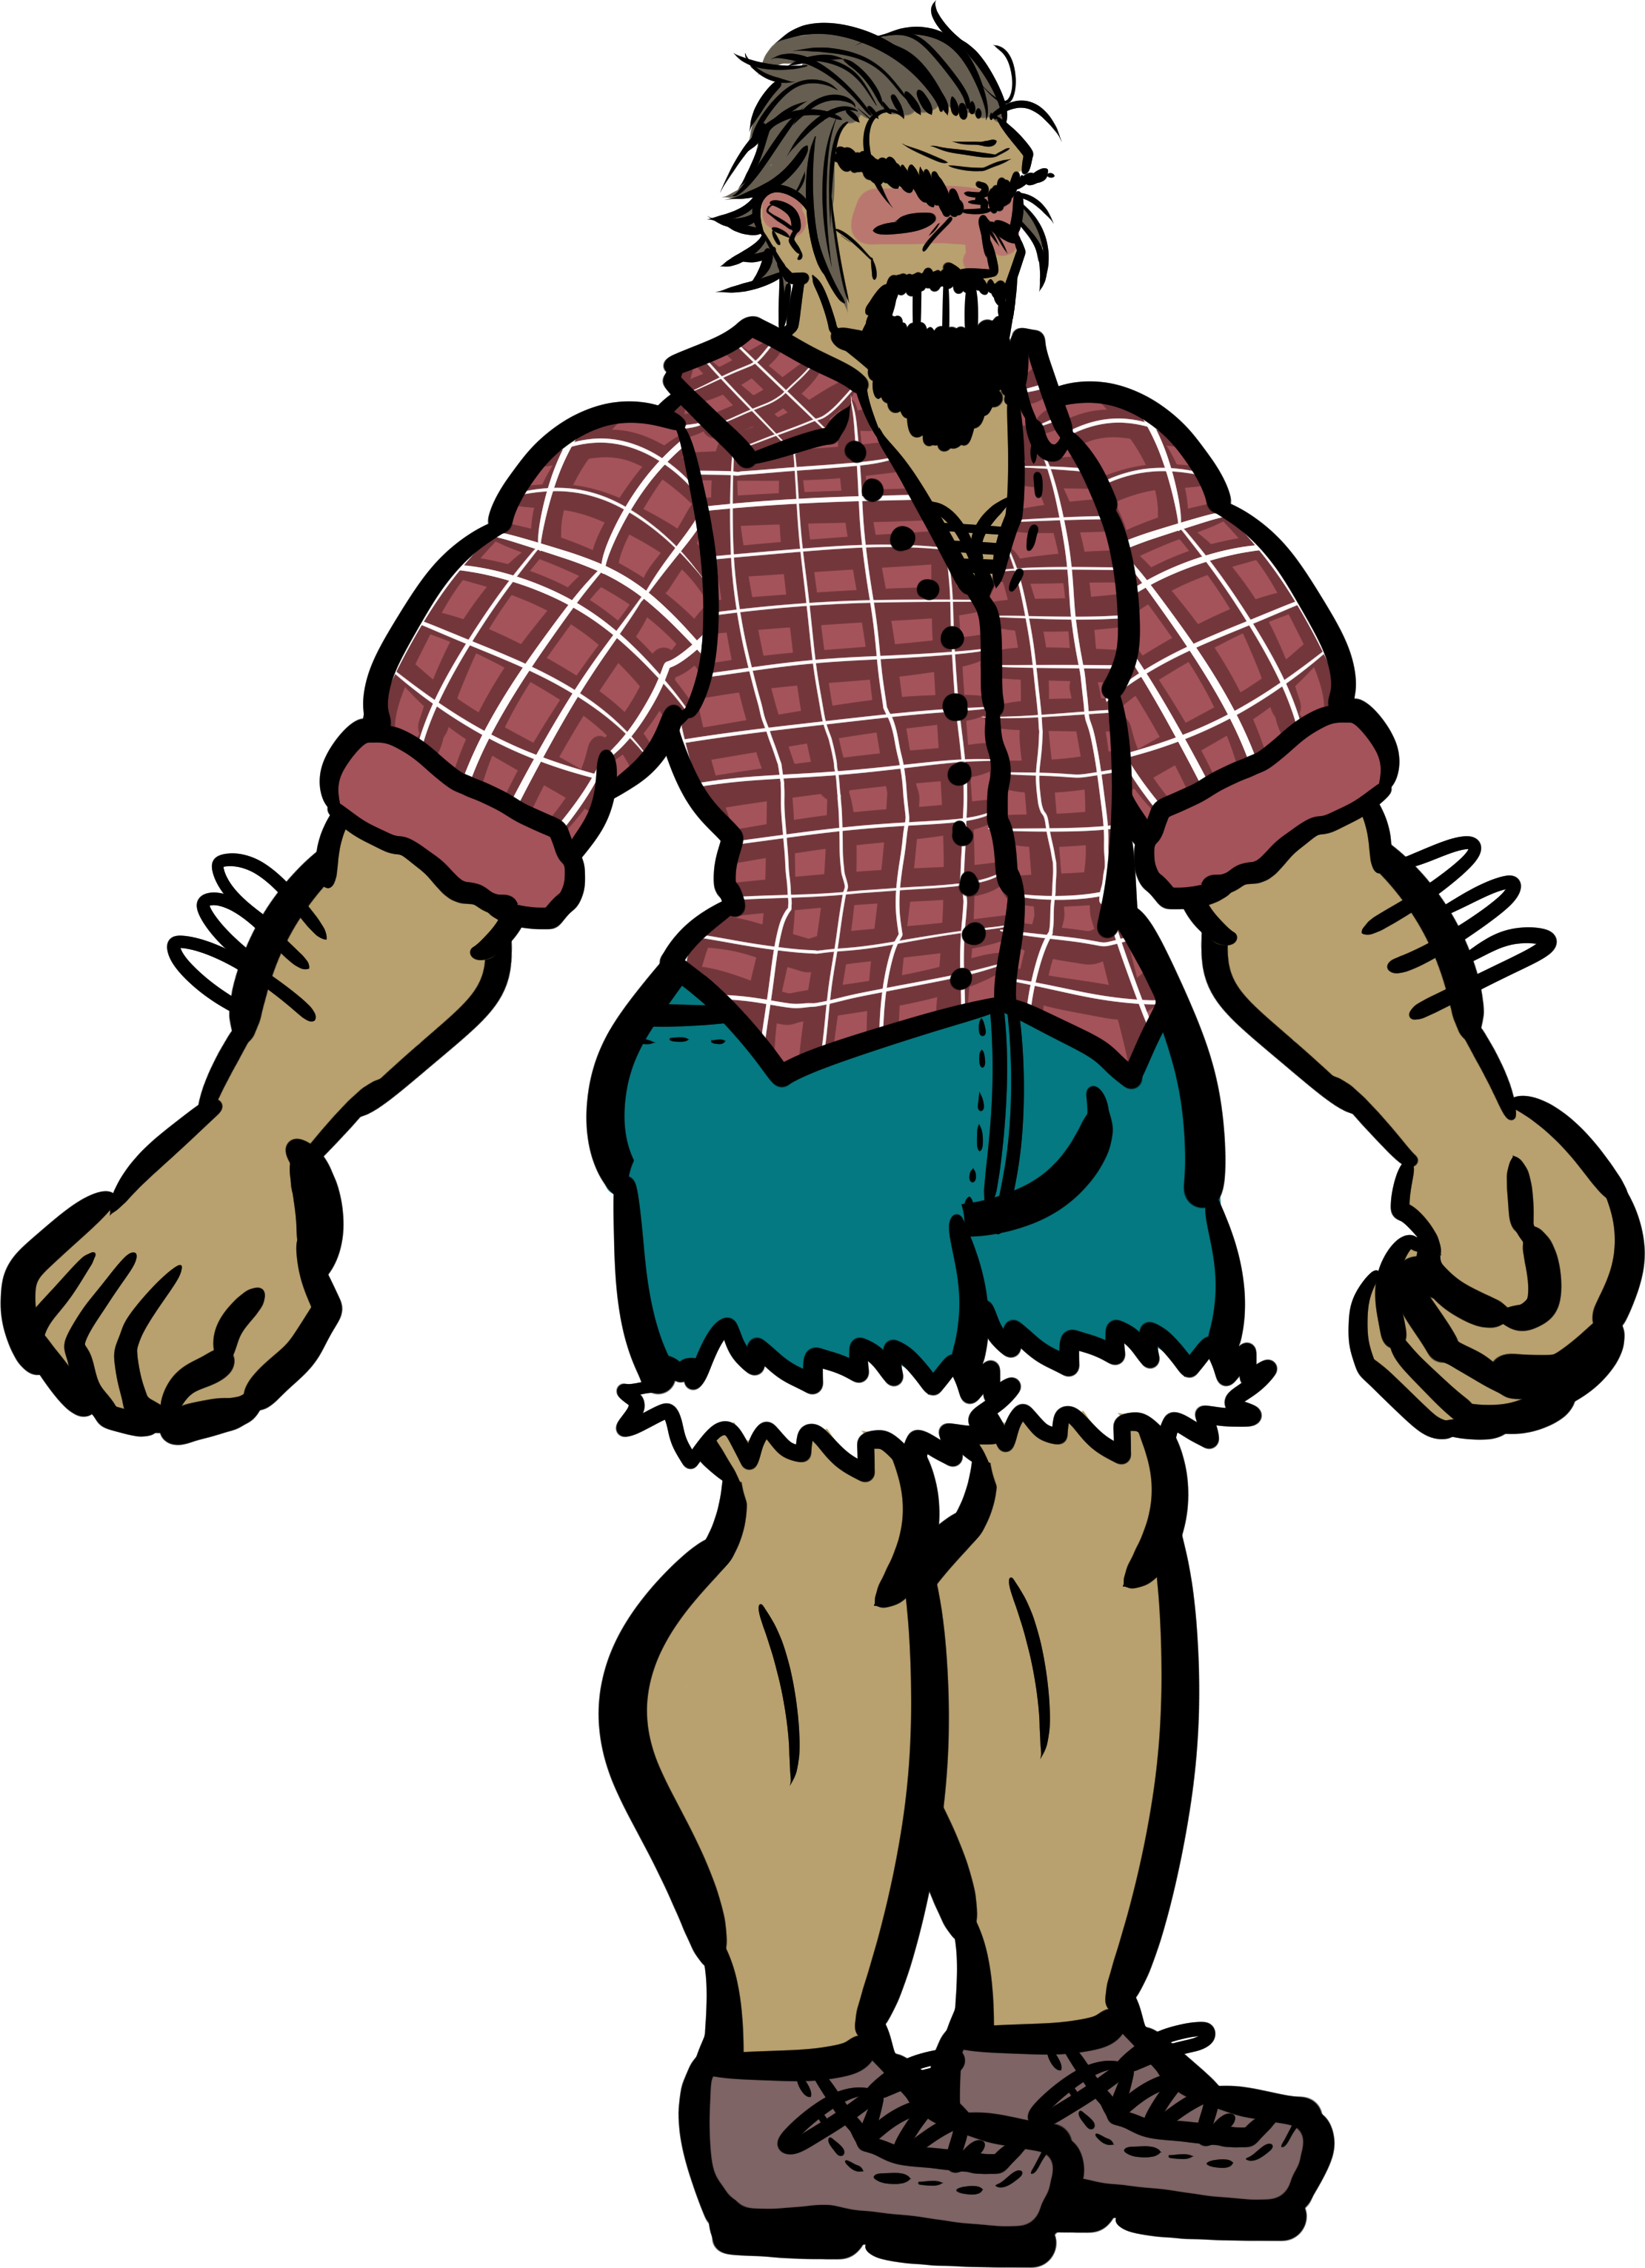 Lumberjack clipart tree removal. Portfolio emergencybattle after this